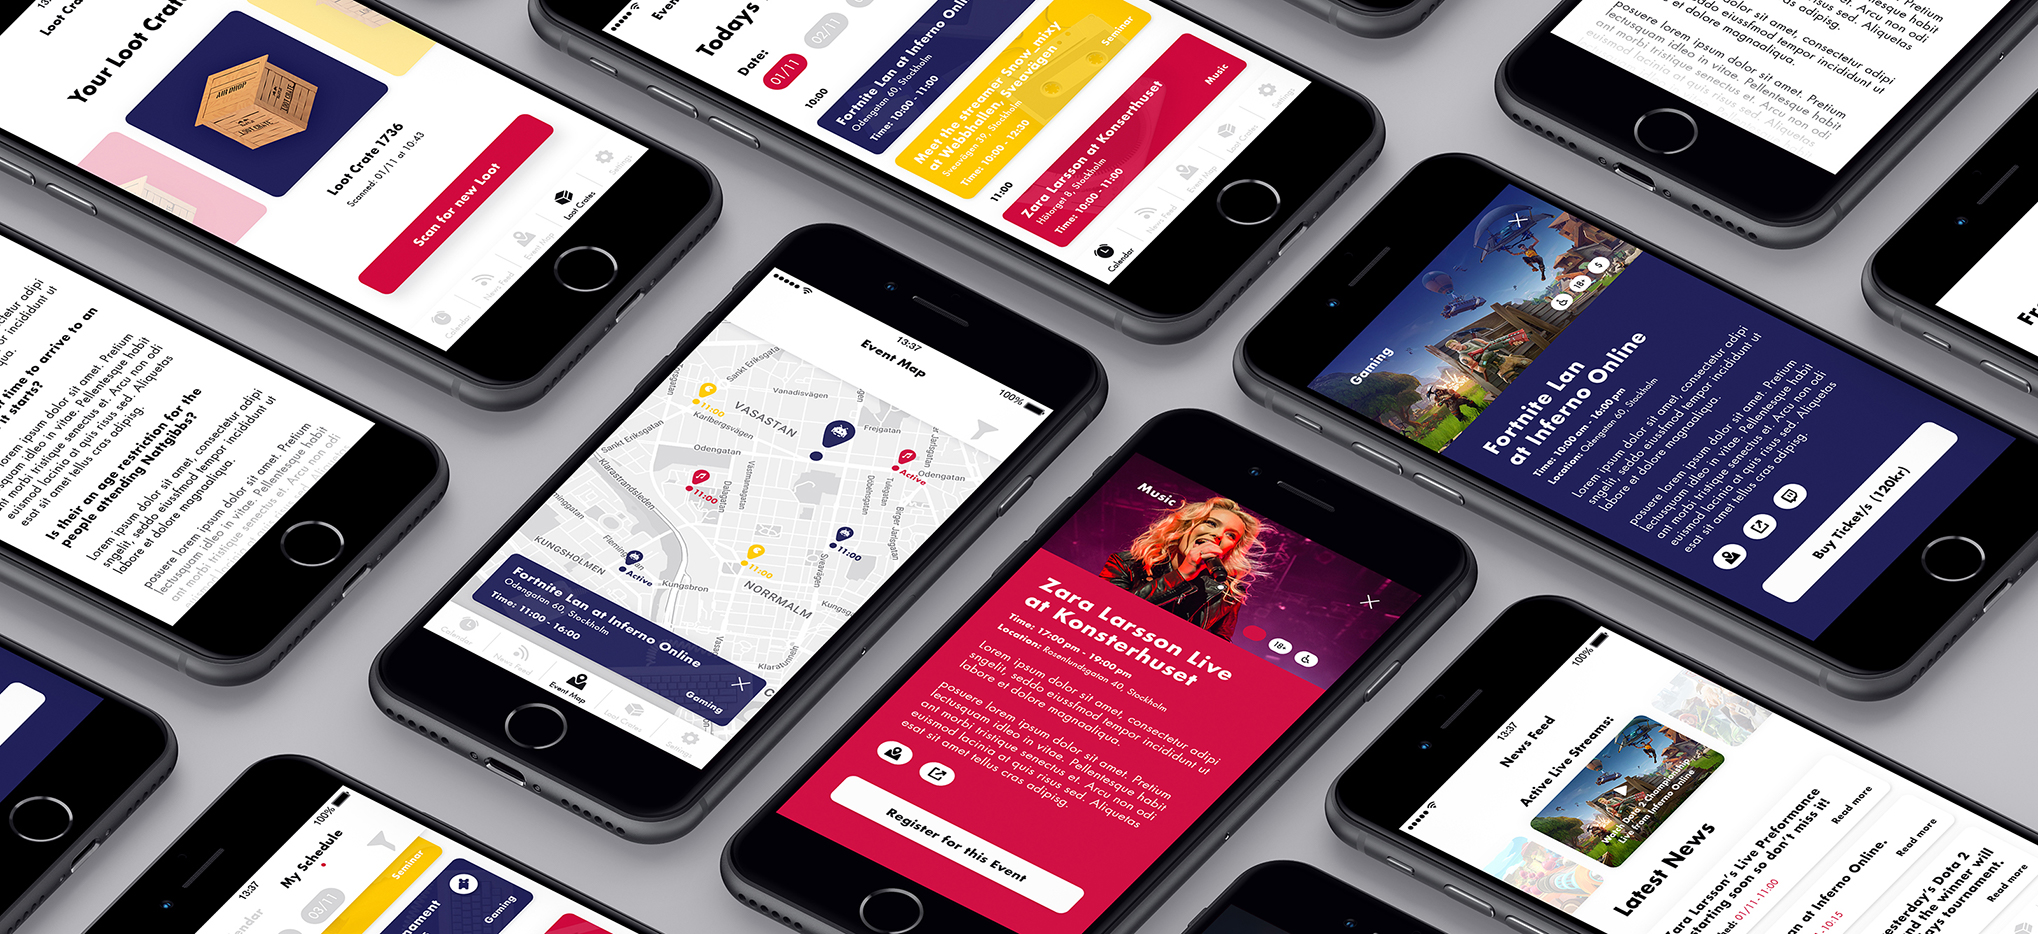 Red Bull App Screens